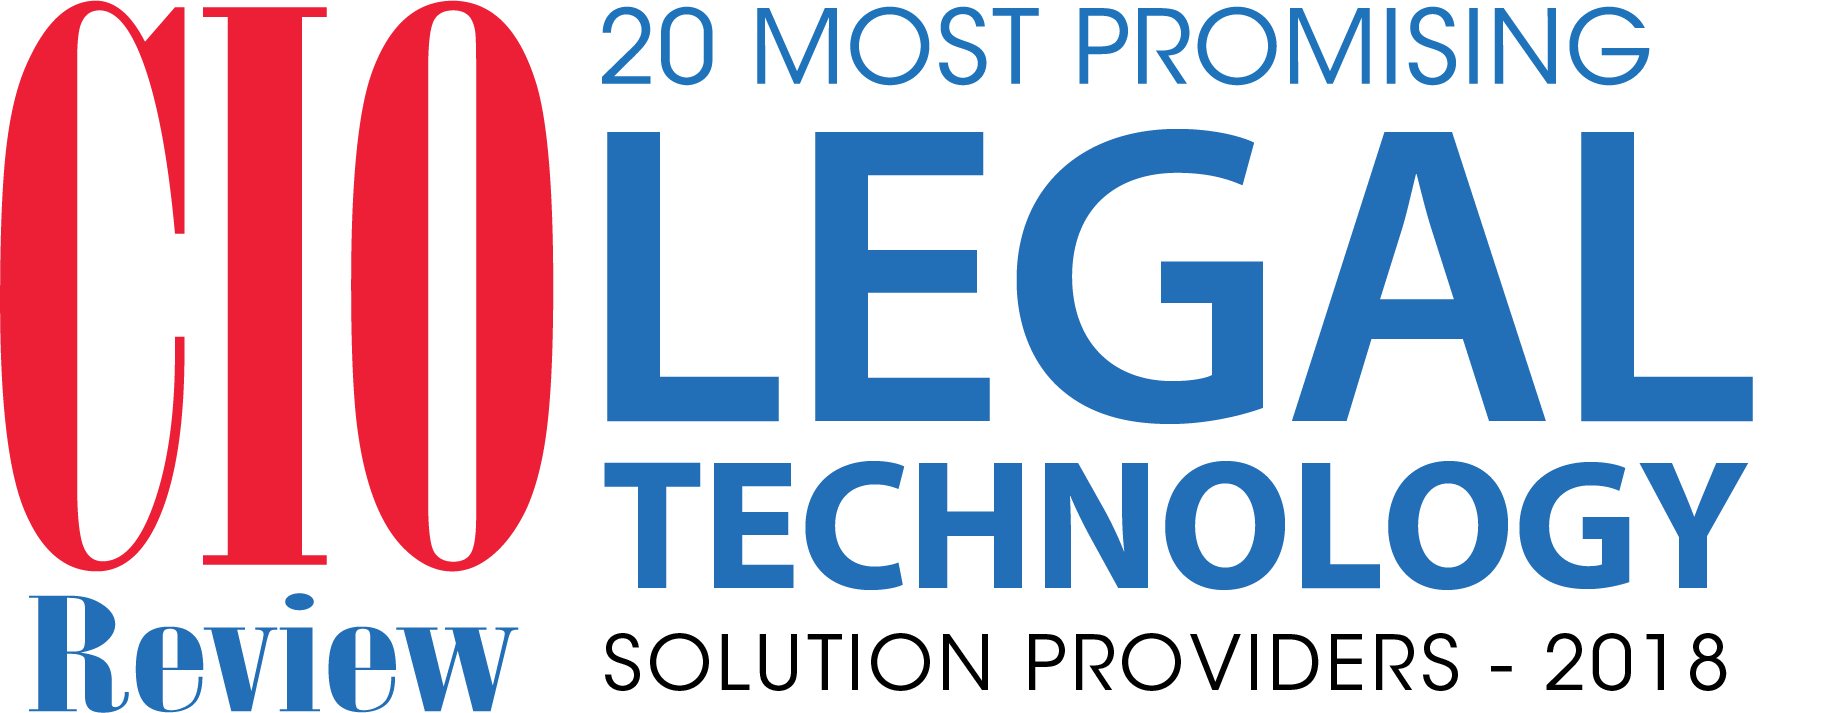 CIO_Legal_Technology_2018_badge.png